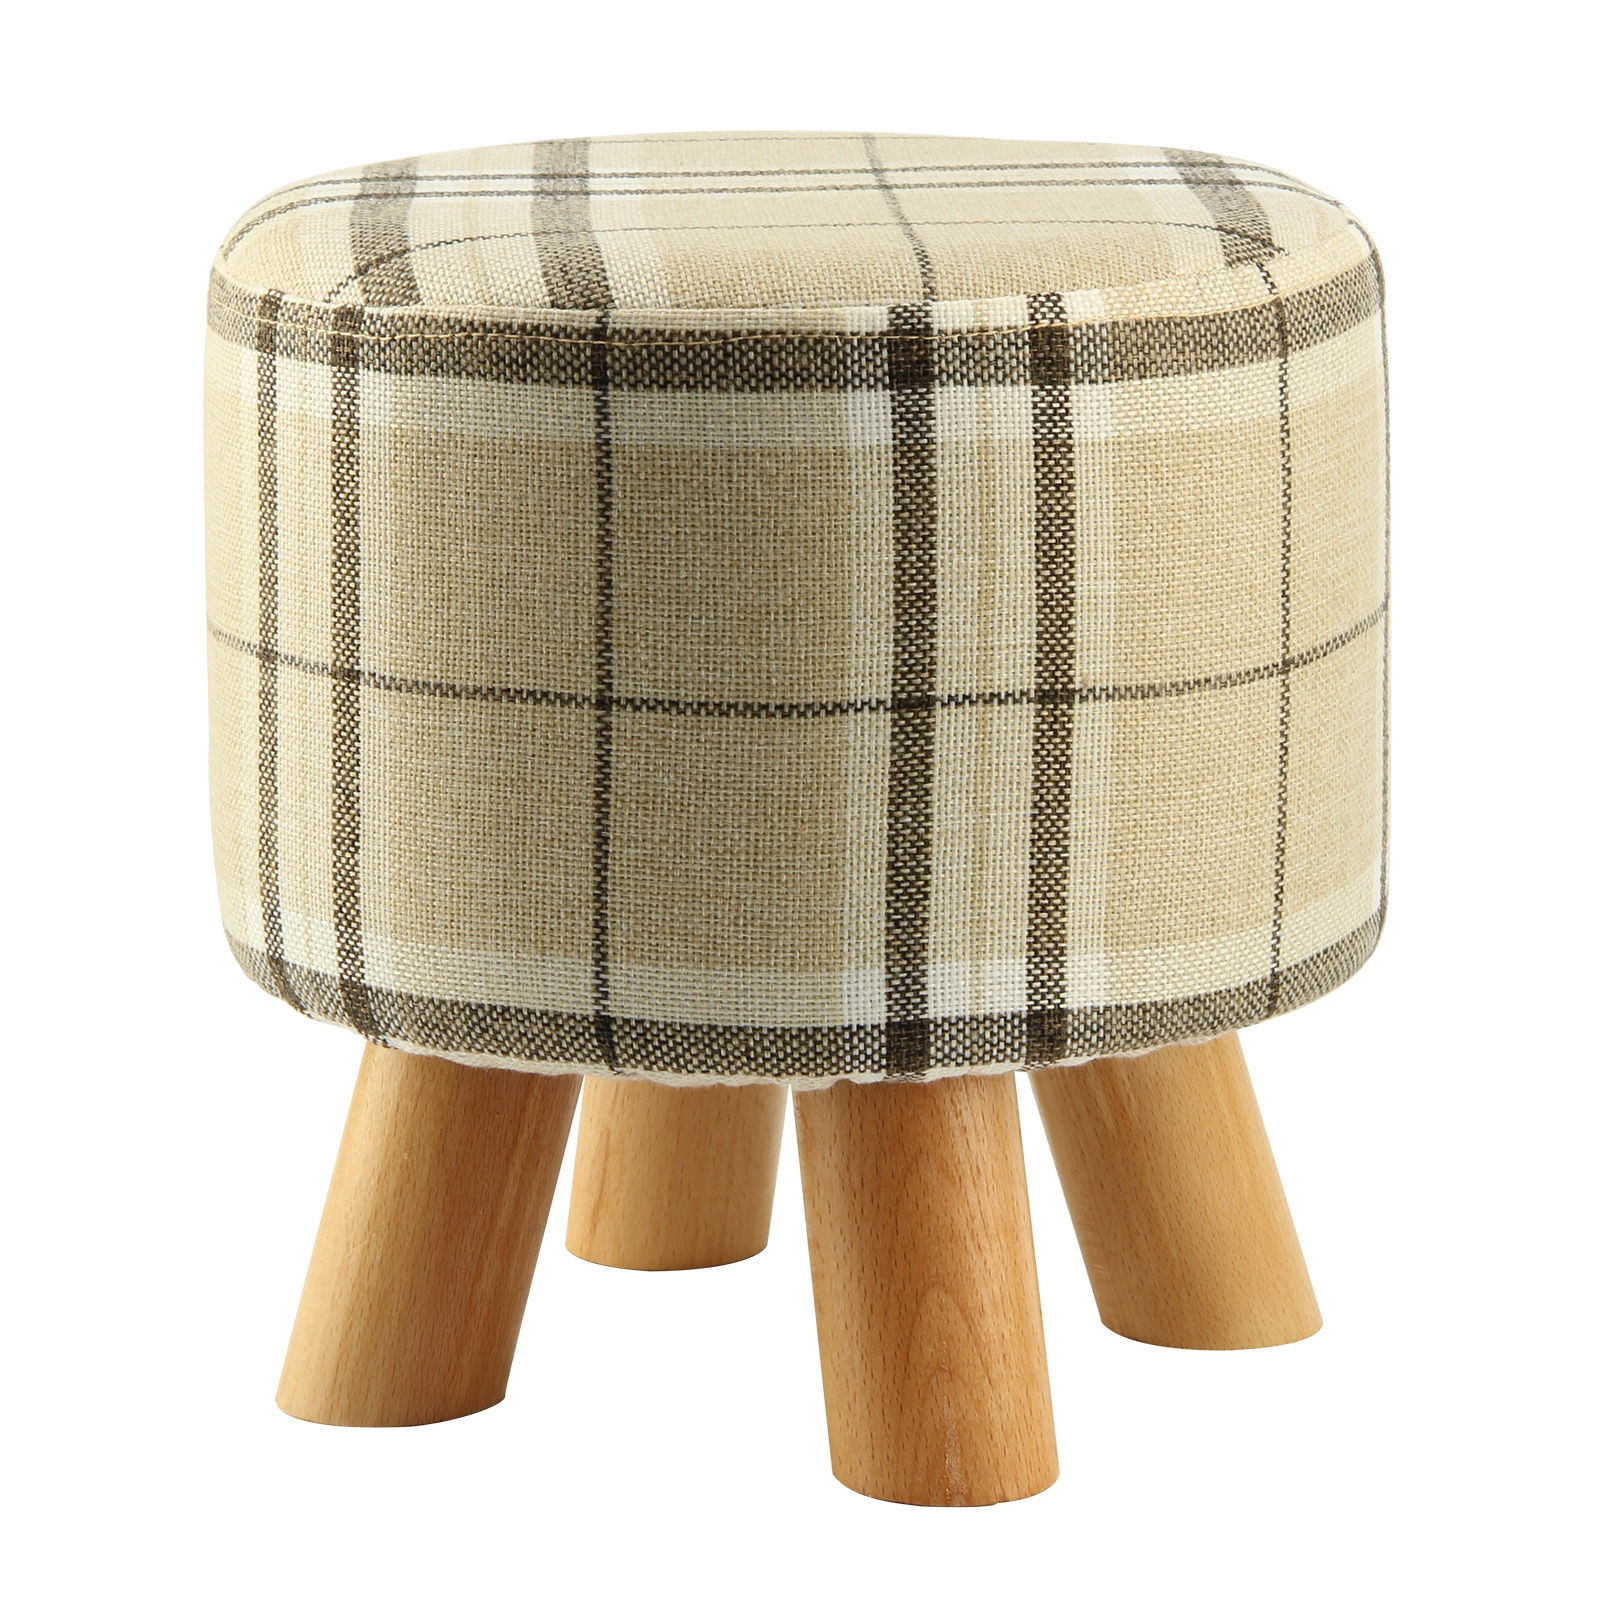 Modern Luxury Upholstered Footstool Round Pouffe Stool + Wooden Leg Pattern:Round Fabric:Big Checkered(4 Legs) checkered pattern embellished color splice knitted leg warmers